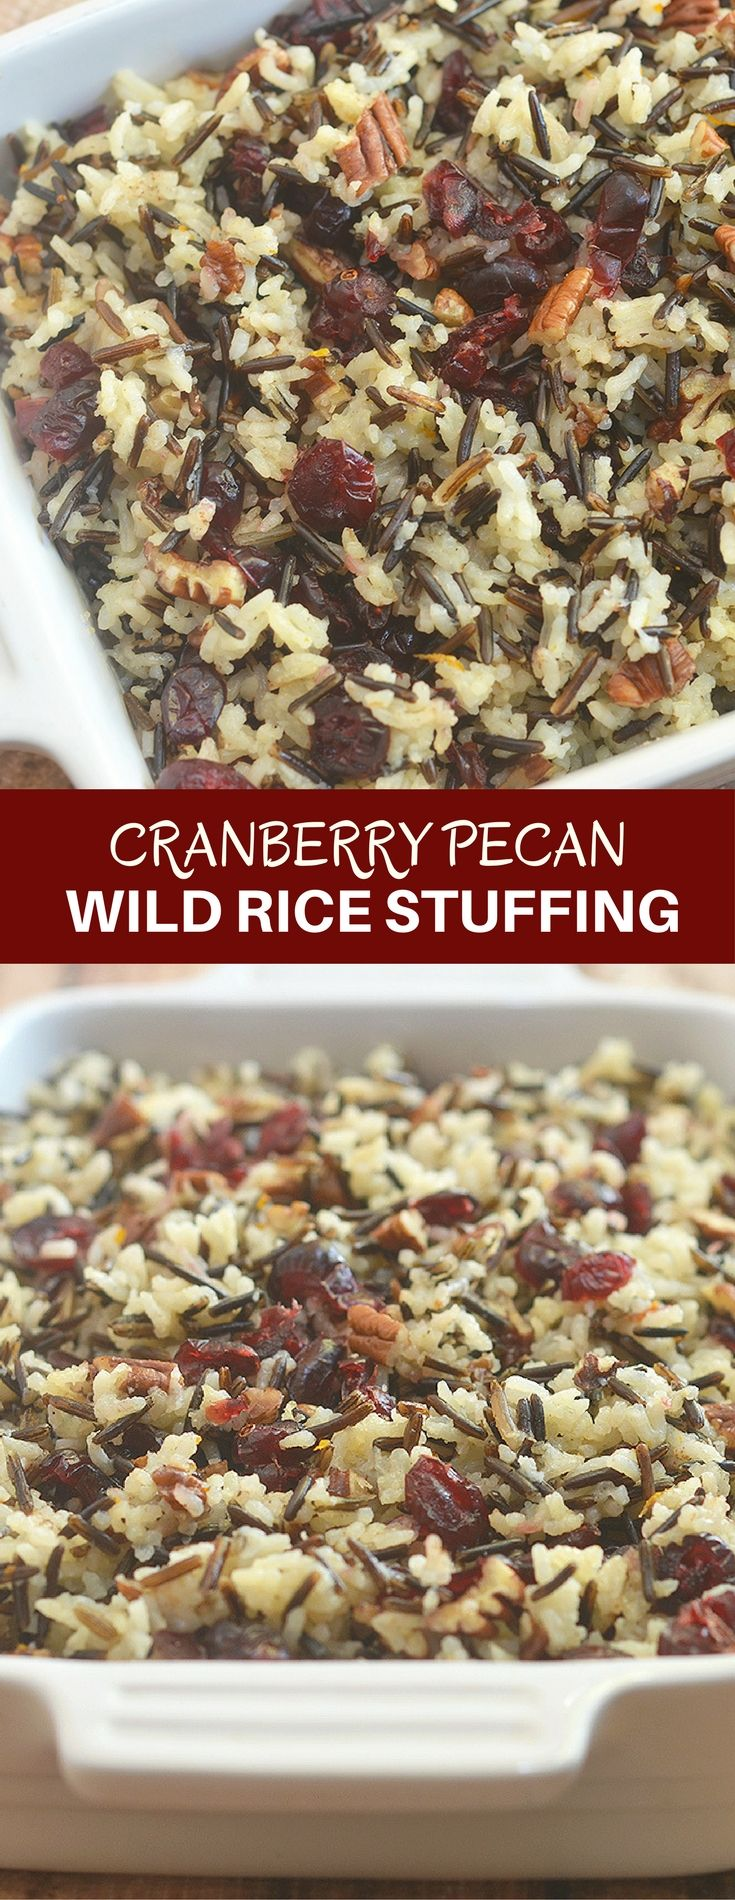 Cranberry Pecan Wild Rice Stuffing is a festive addition to your Thanksgiving celebration. Loaded with tart cranberries, toasted pecans, and orange zest, it makes a fantastic side dish or turkey stuffing! via @lalainespins